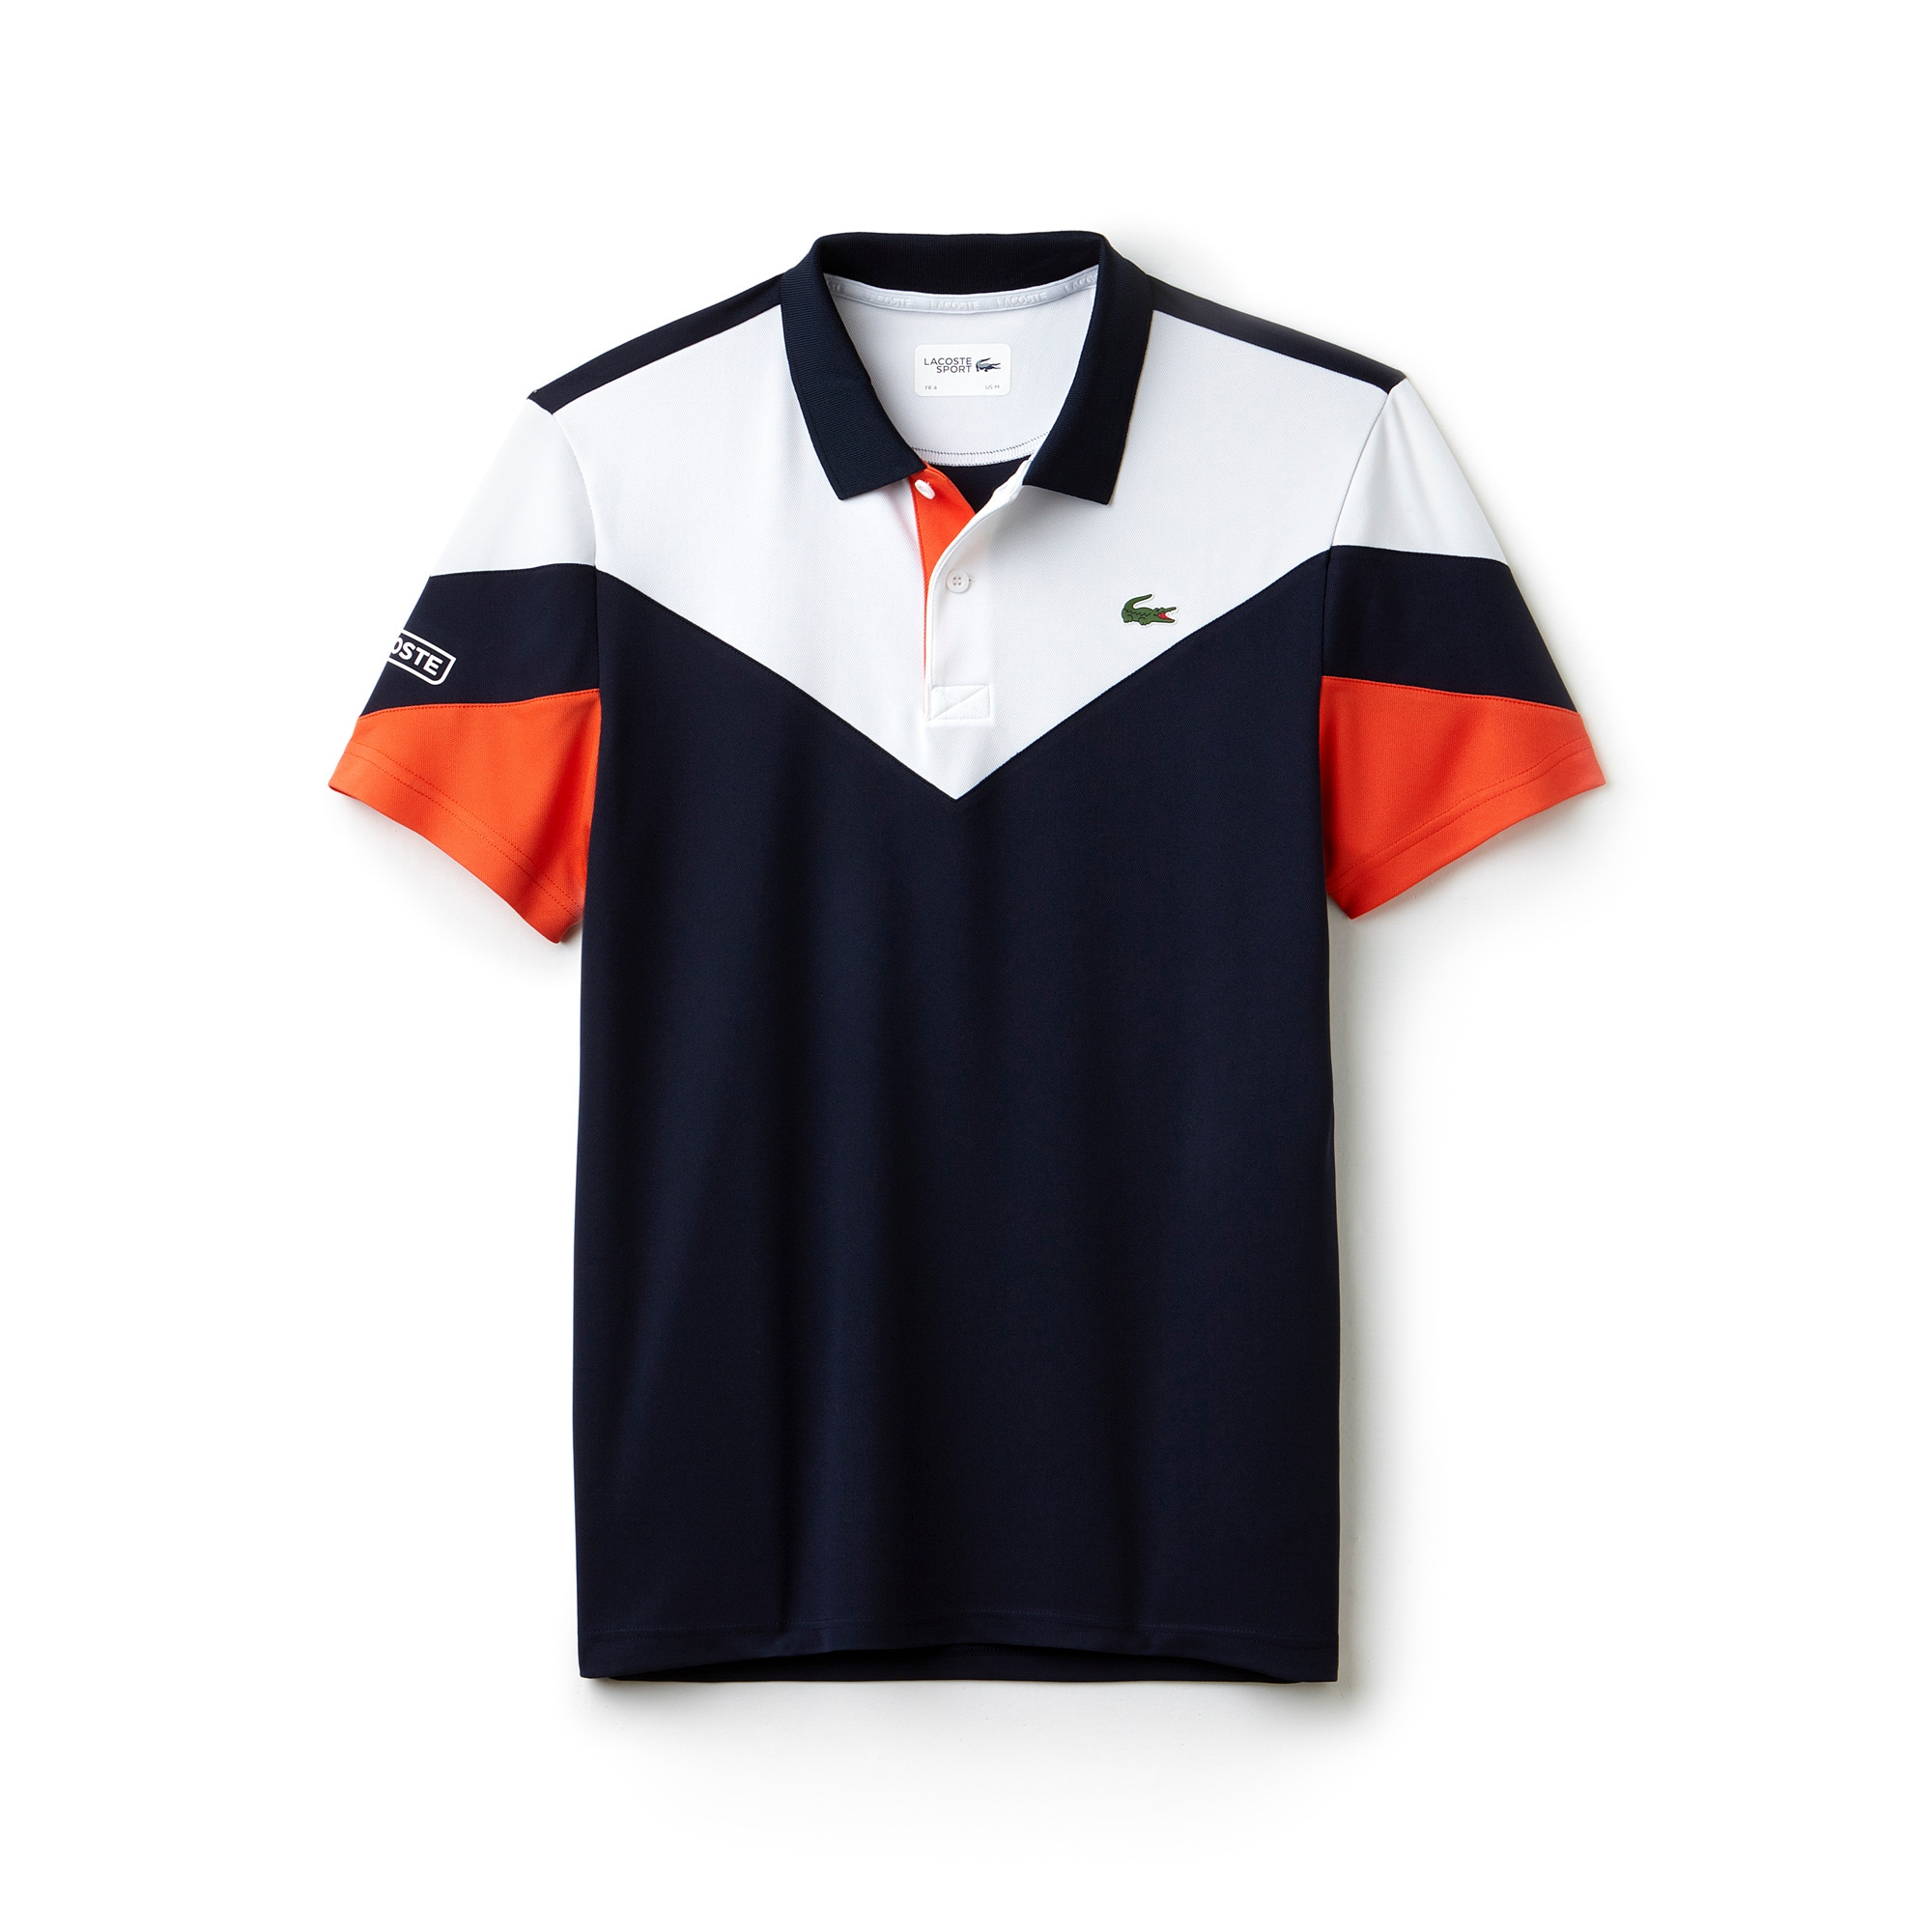 Herren-Funktions-Polo mit Colorblocks LACOSTE SPORT TENNIS